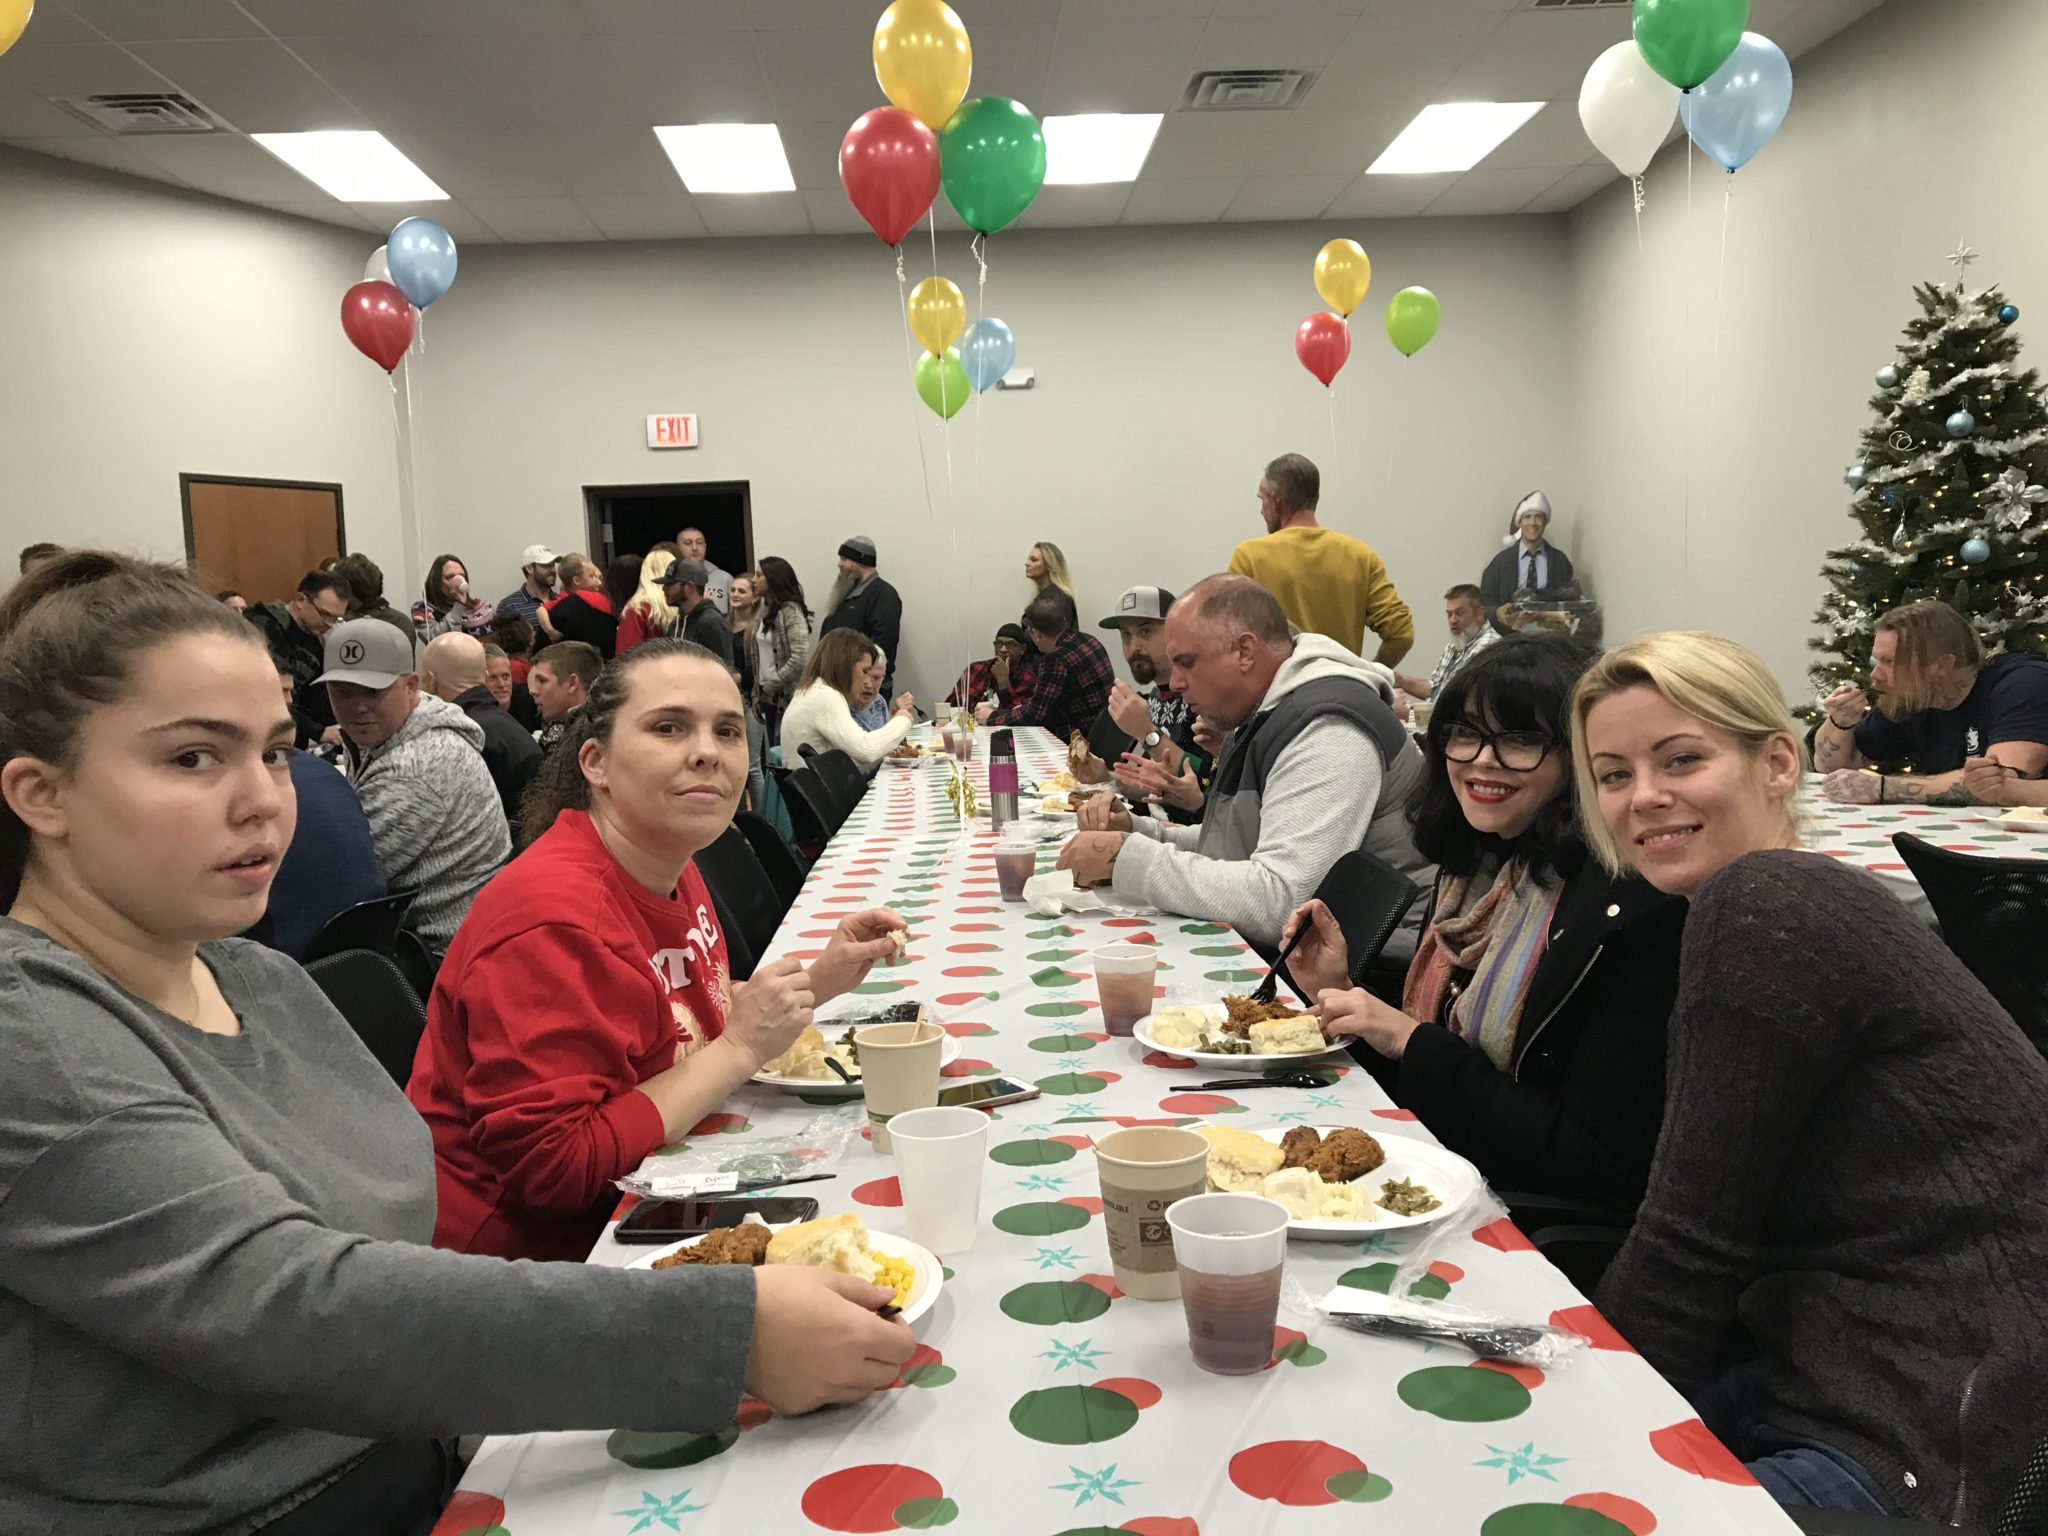 SONTX 2019 Christmas Party - Solutions of North Texas - Denton, Texas substance abuse services